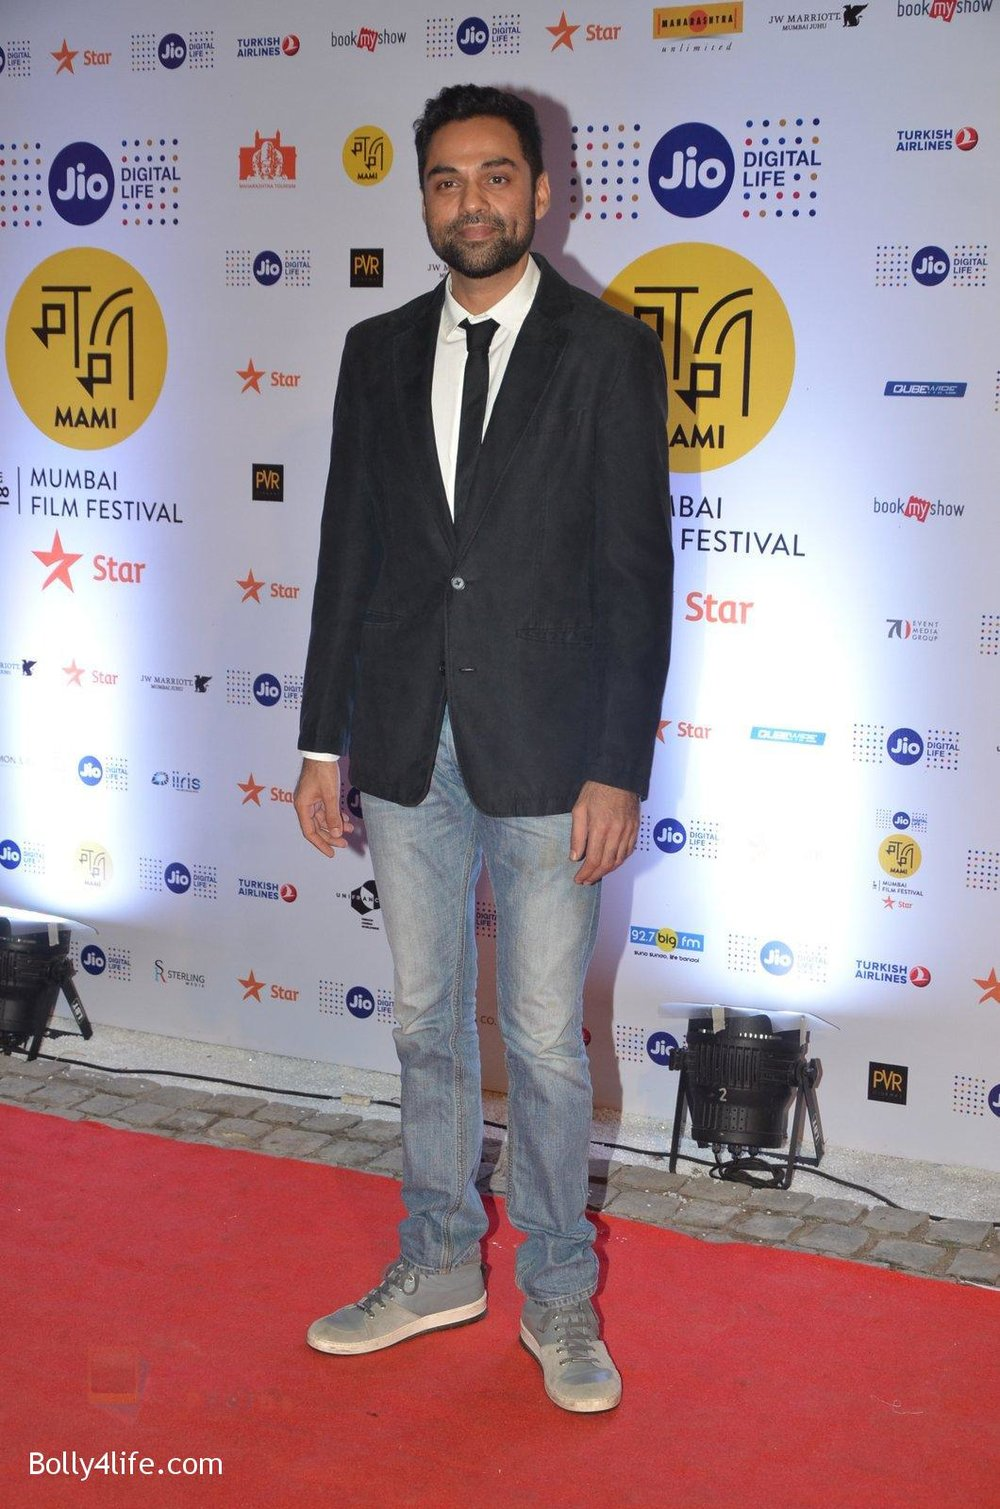 Abhay-Deol-at-MAMI-Film-Festival-2016-on-20th-Oct-2016-133.jpg